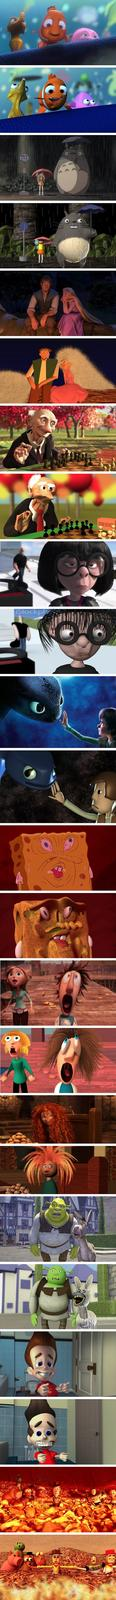 Badly Recreated Animated Films